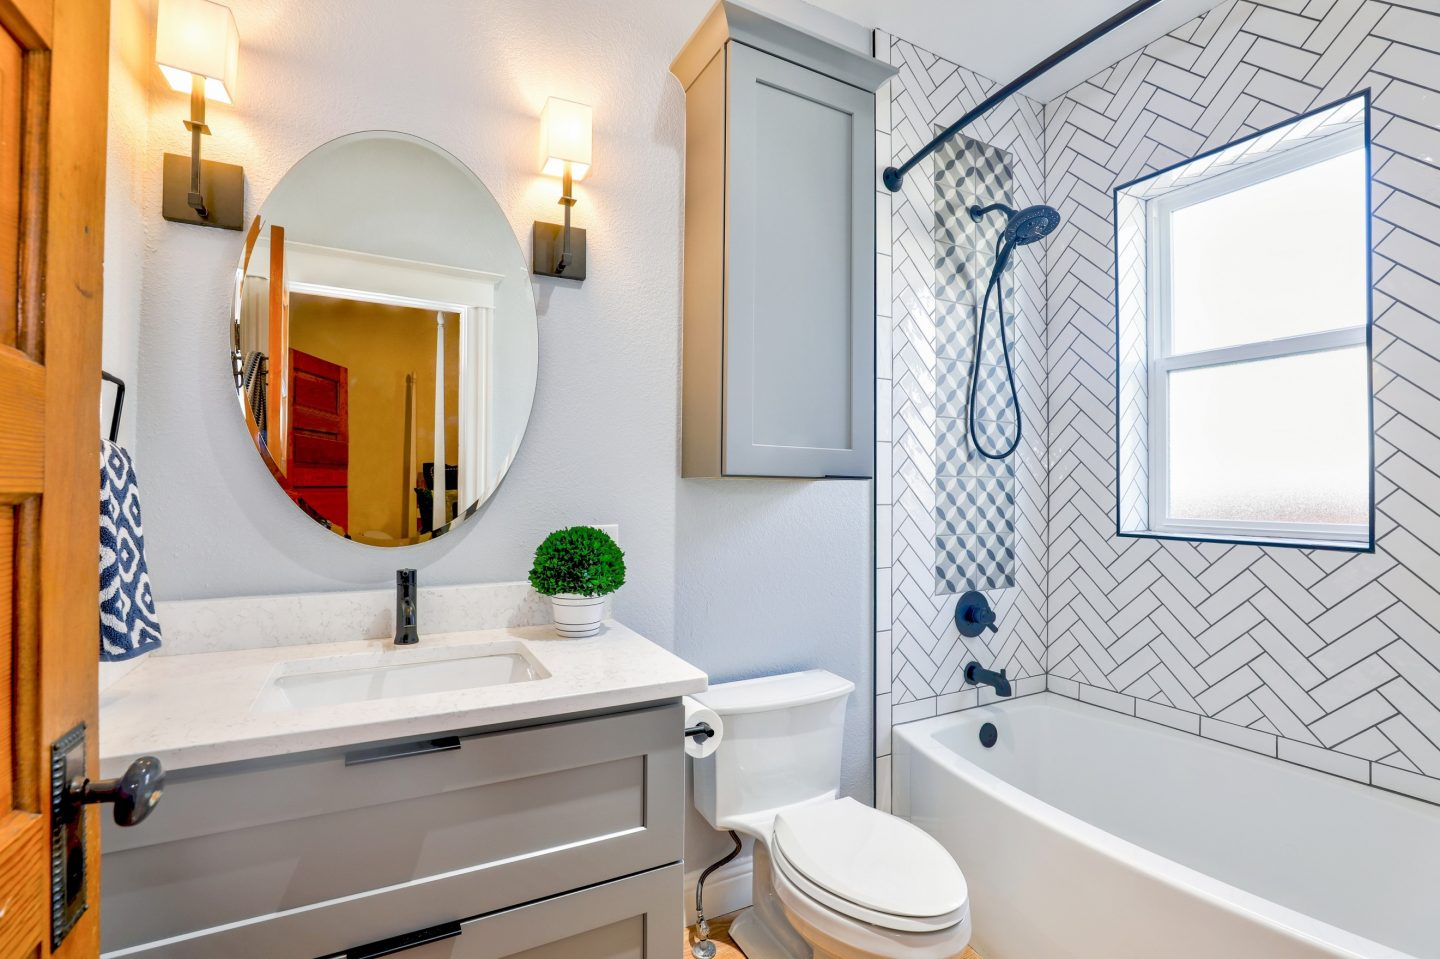 10th Day of Blogmas – The benefits of vinyl flooring for your bathroom